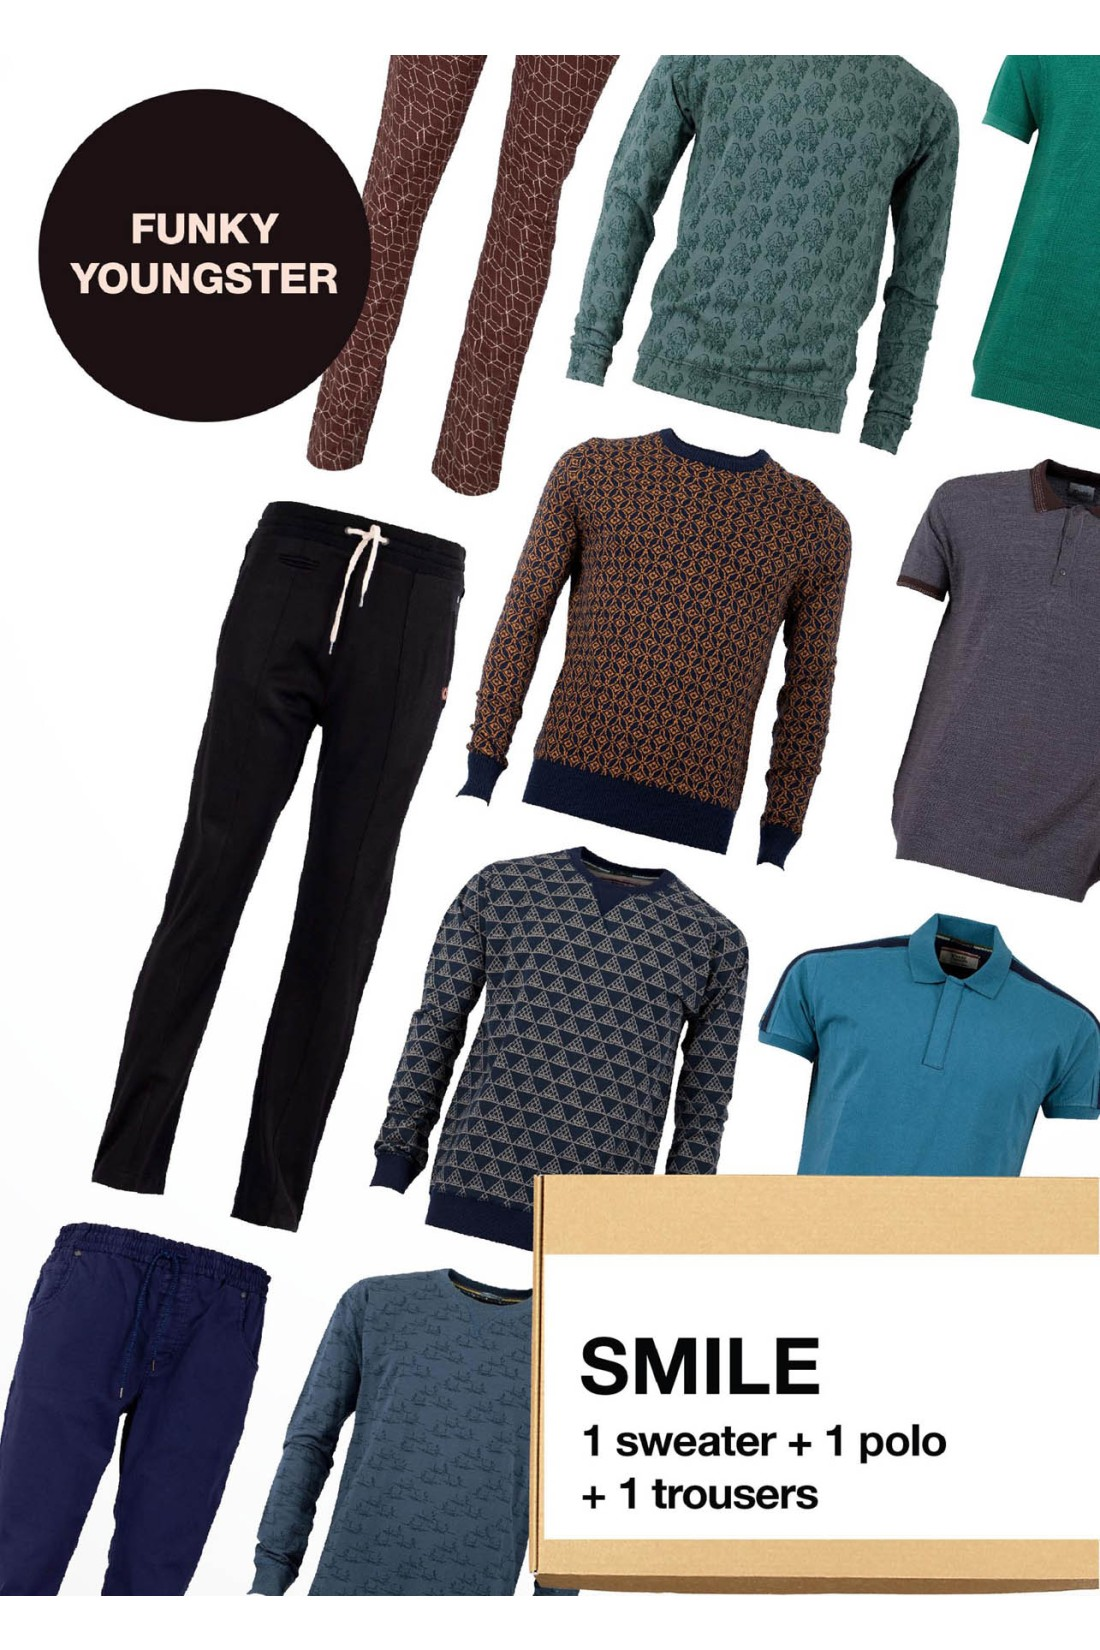 Surprise Box FUNKY YOUNGSTER - SMILE - 3 Styles X-S - Sweater + Polo + Trousers